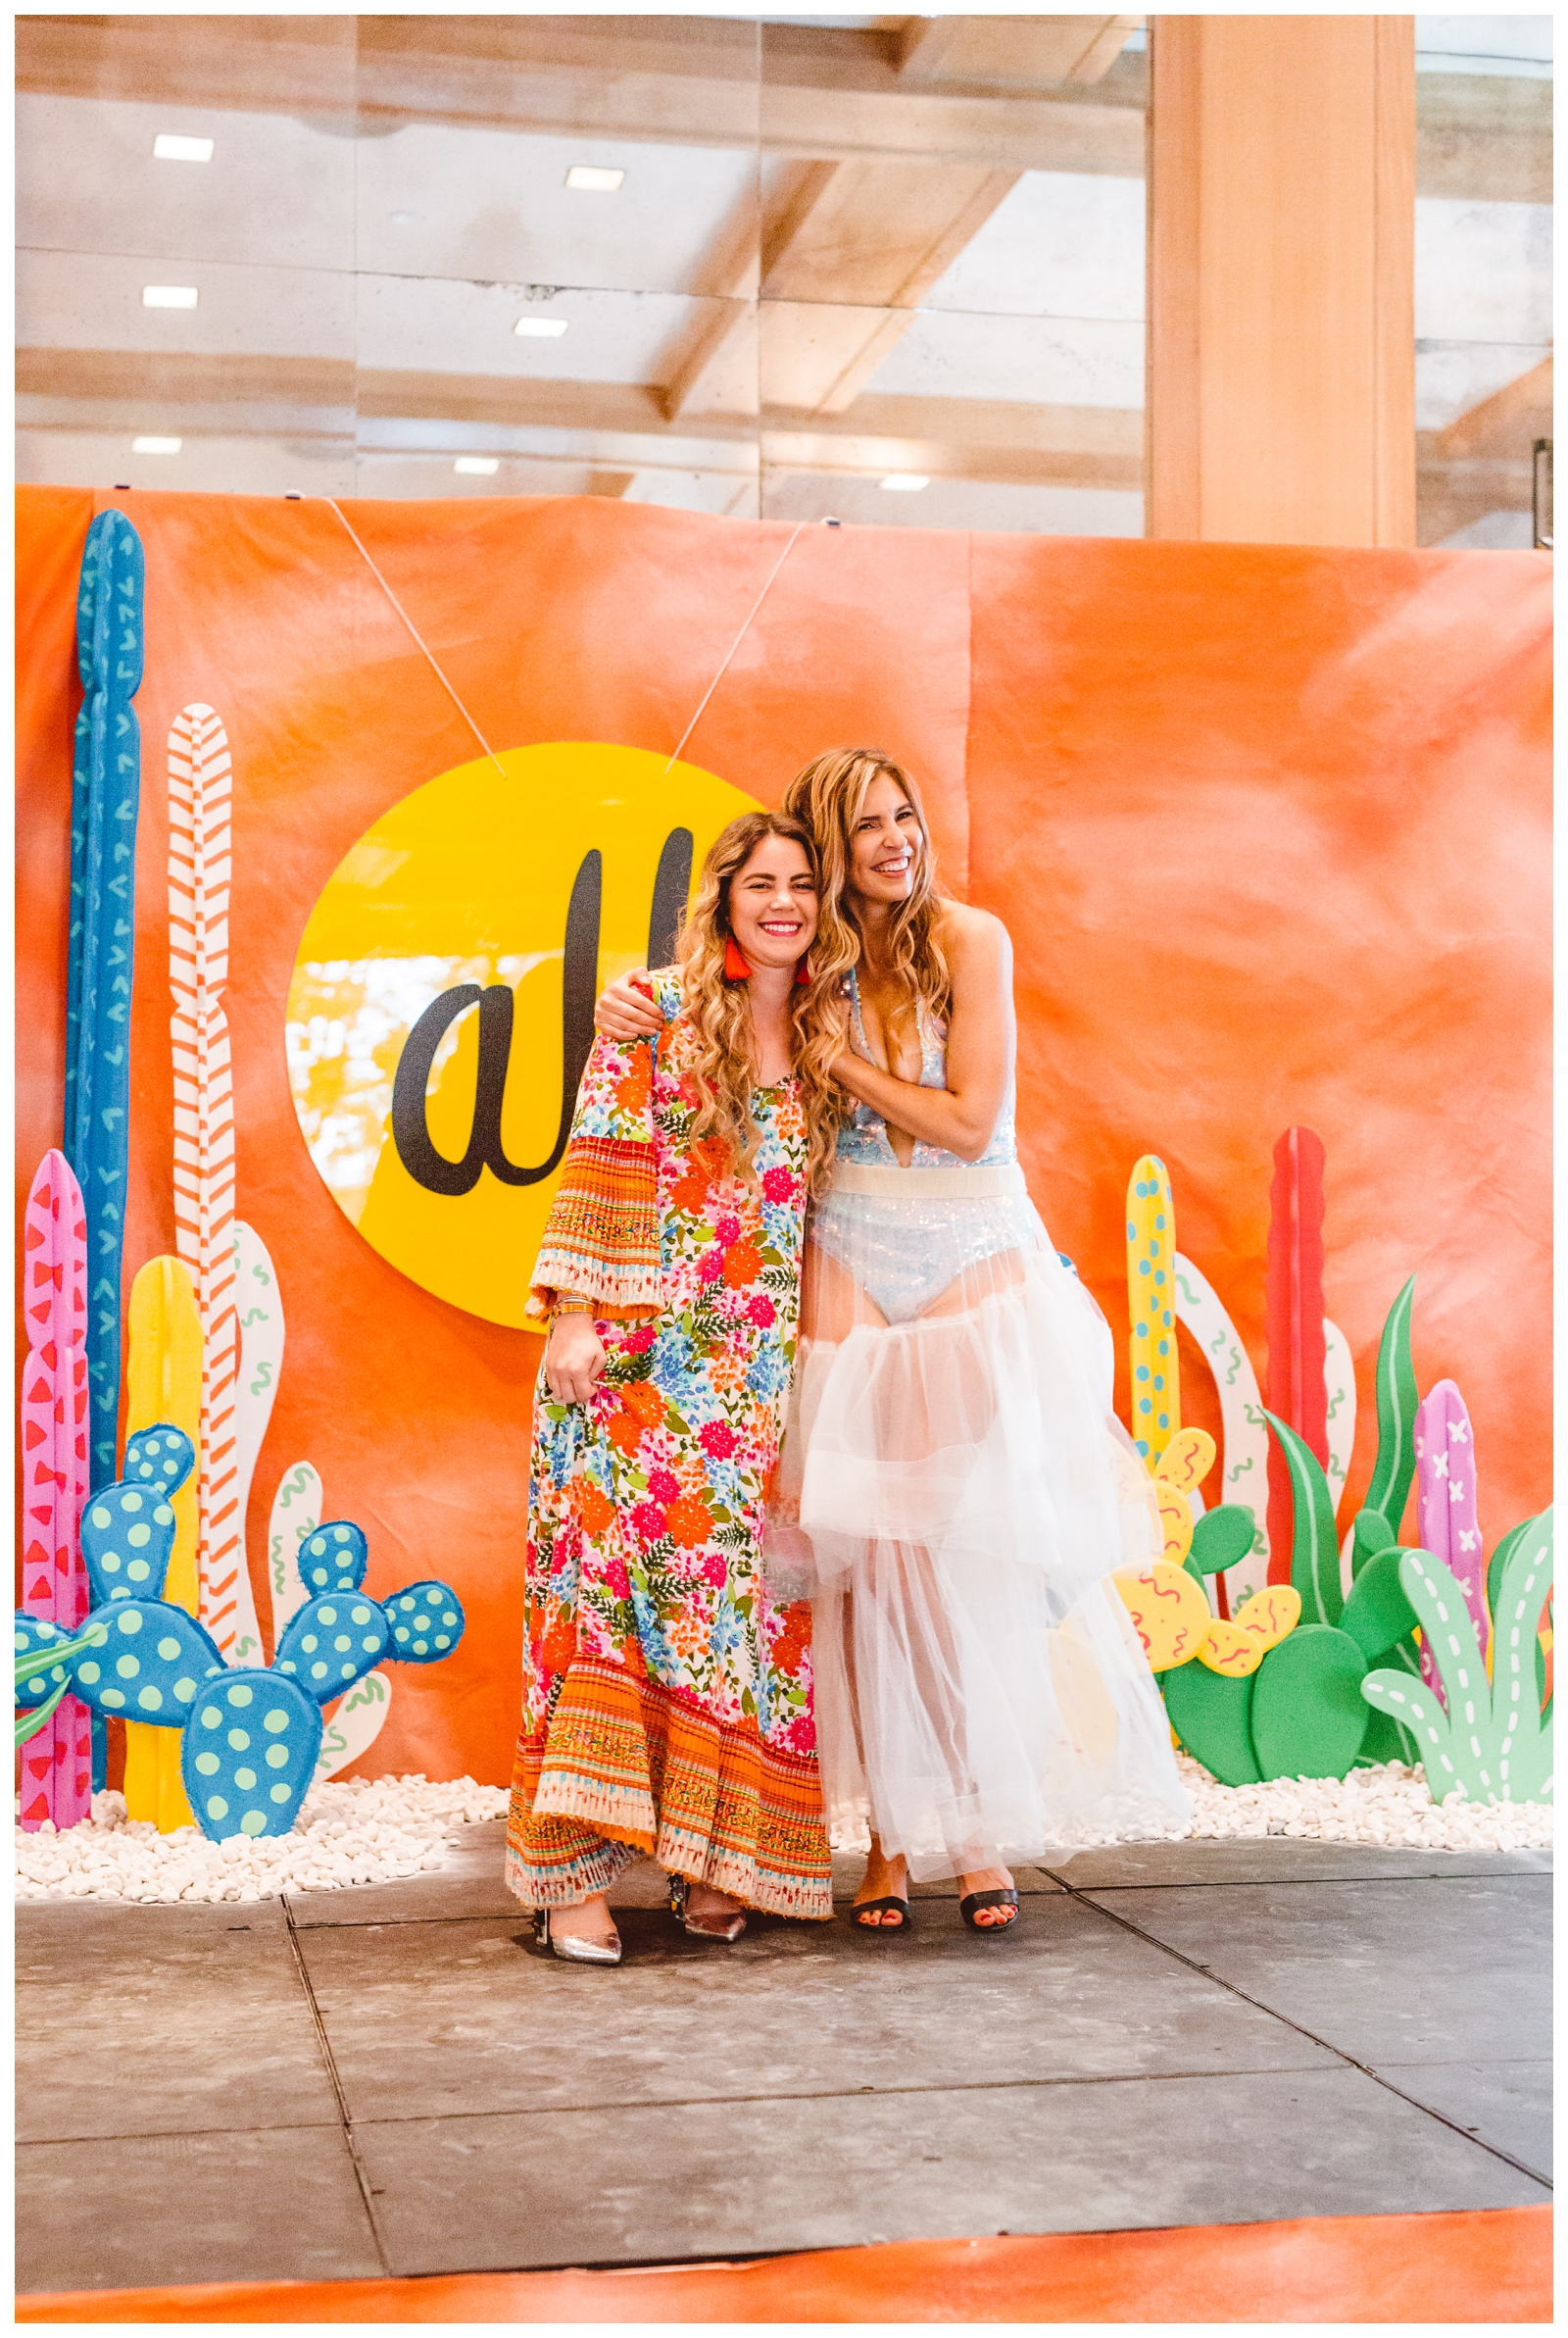 the-house-of-perna-runway-show-at-alt-summit-palm-springs-brooke-michelle-photography-1-photo.jpg